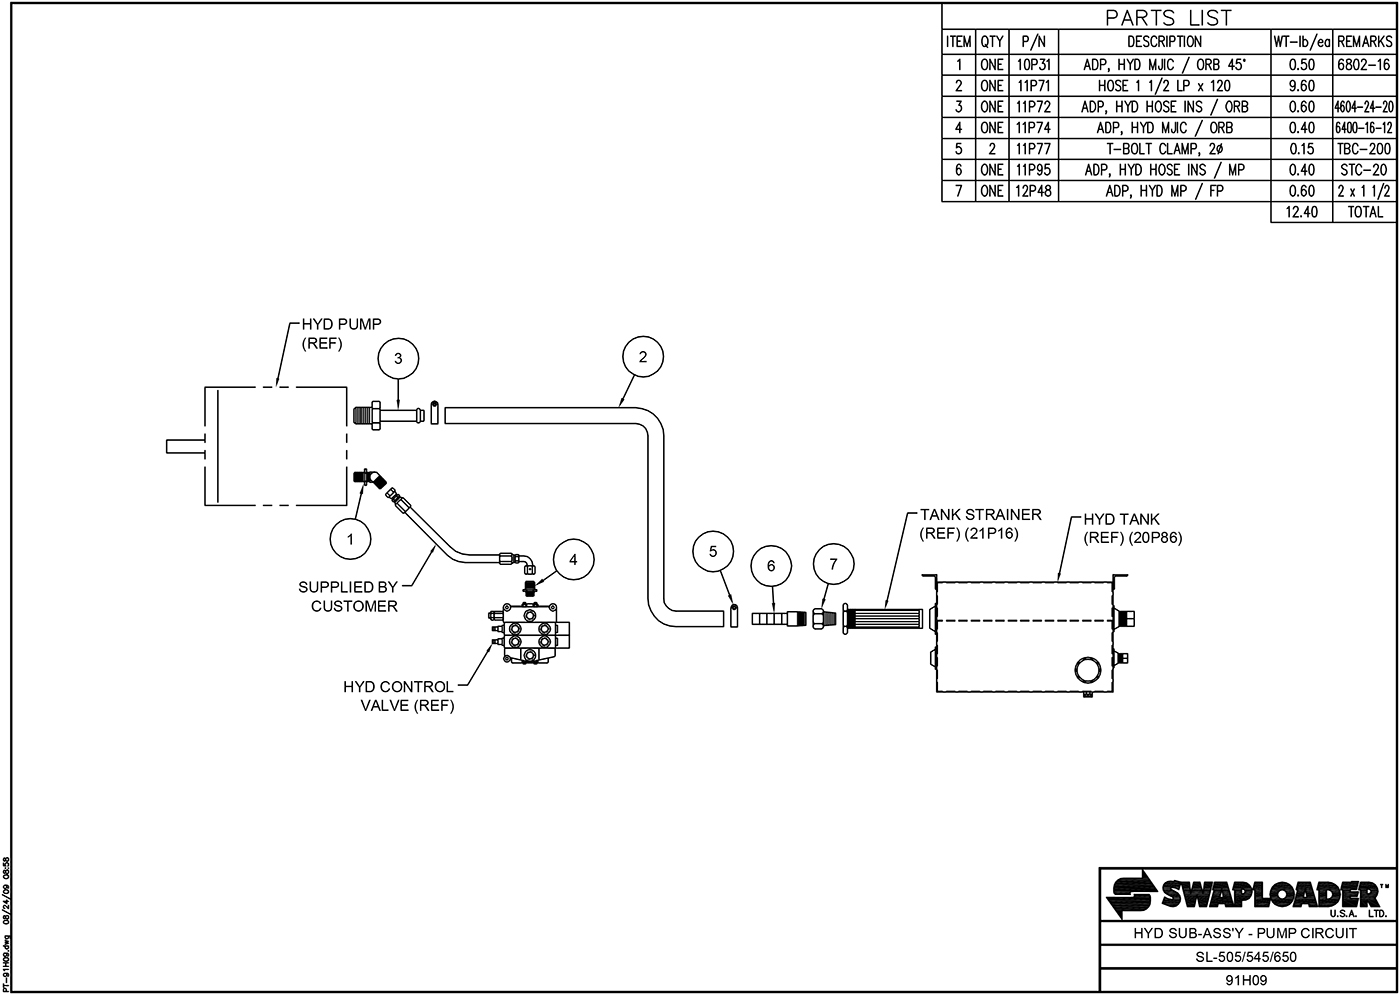 SL-505/545/650 Hydraulic Sub-Assembly (Pump Circuit) Diagram